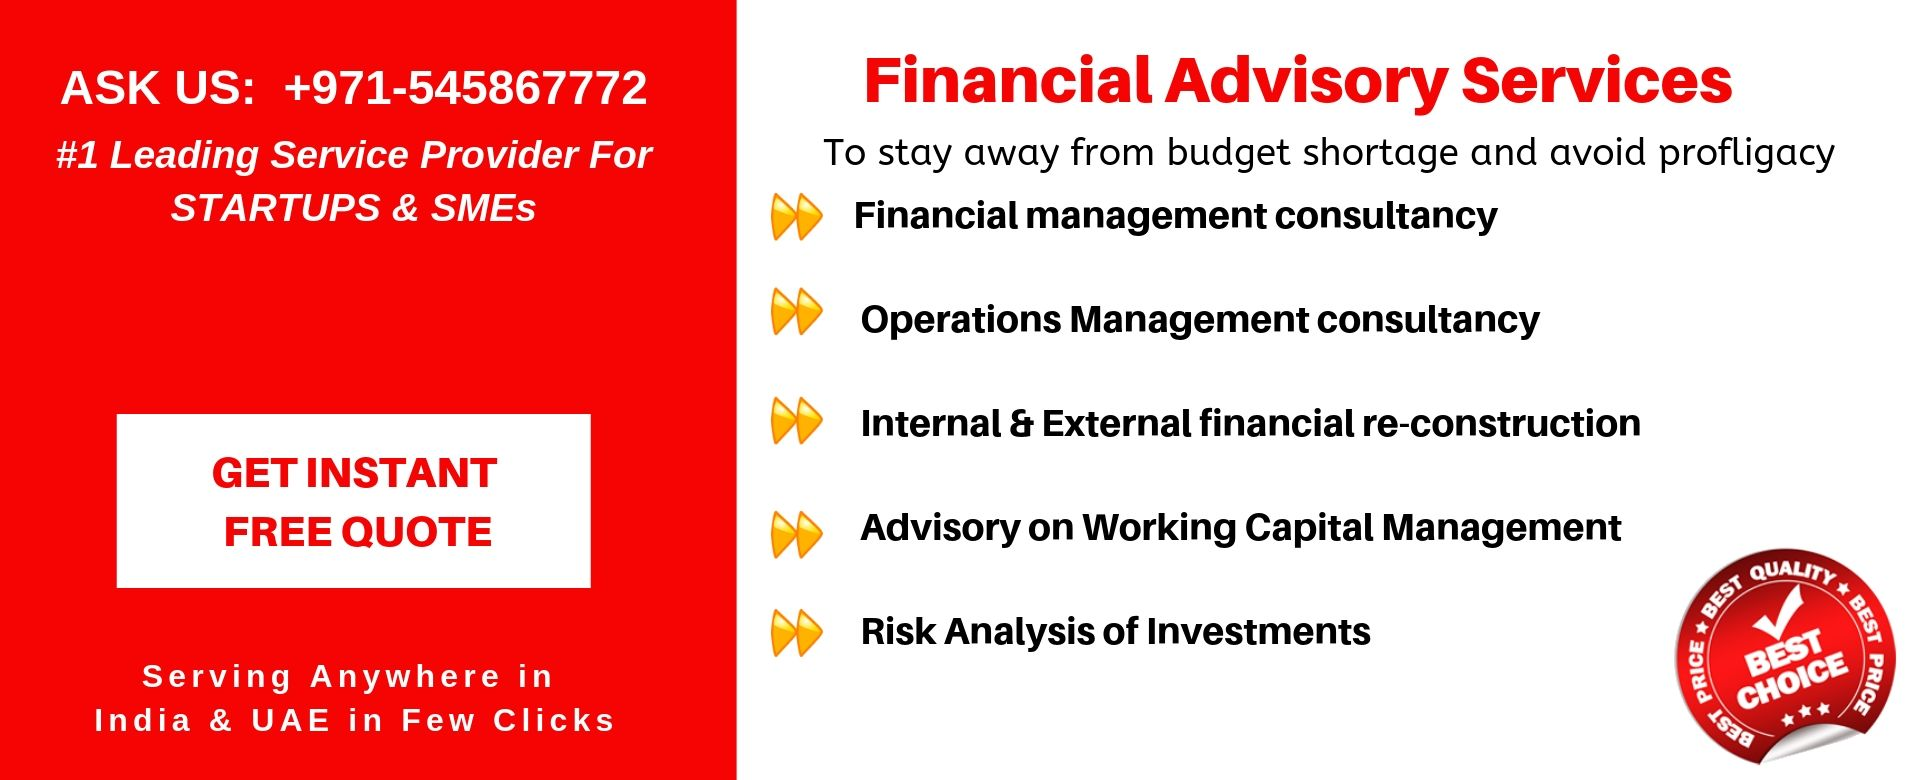 financial advisory services in uae